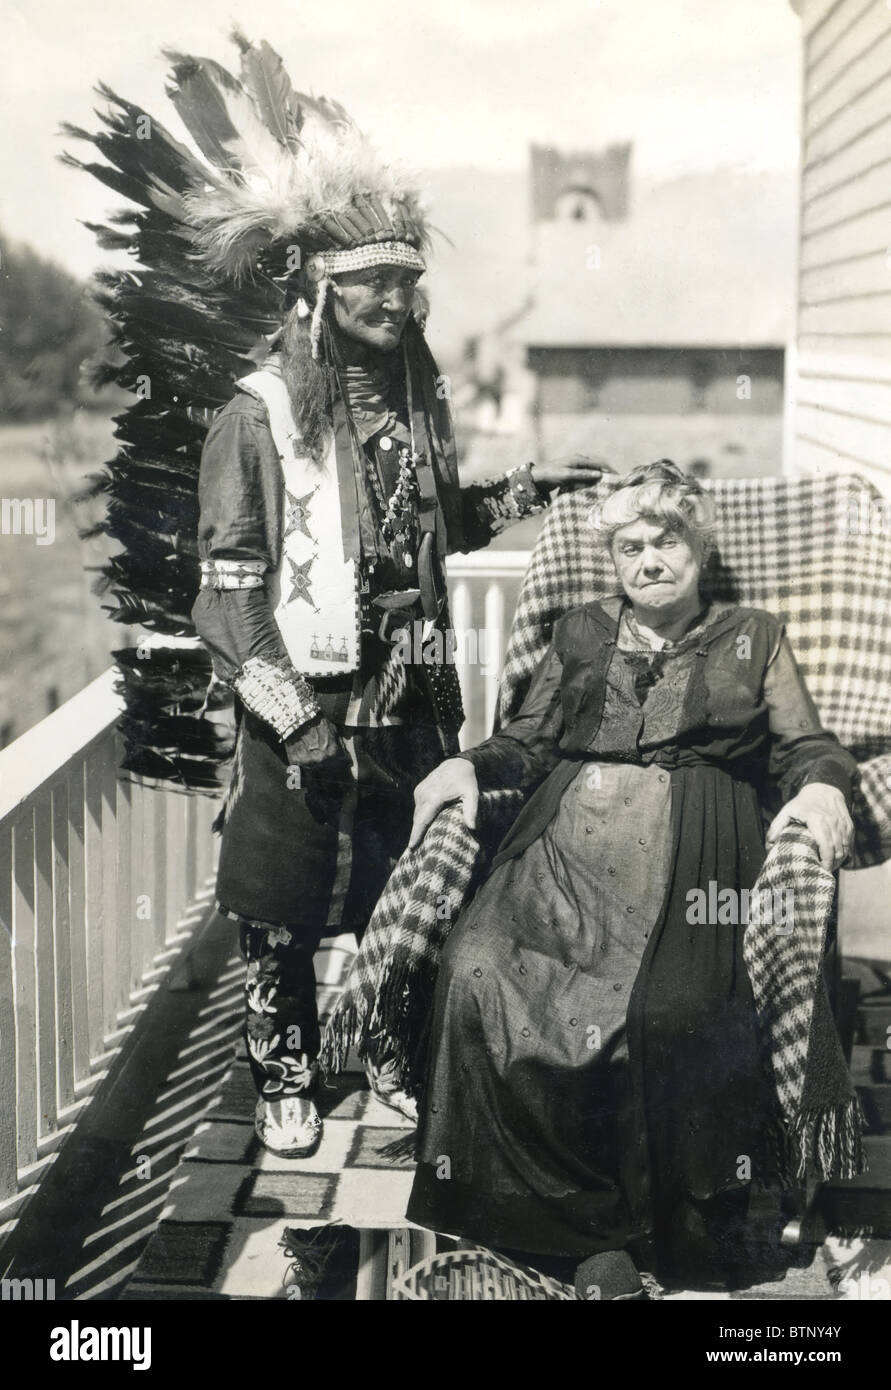 Late 1800's or early 1900's photograph showing an Indian Chief in full headdress standing next to an older - Stock Image